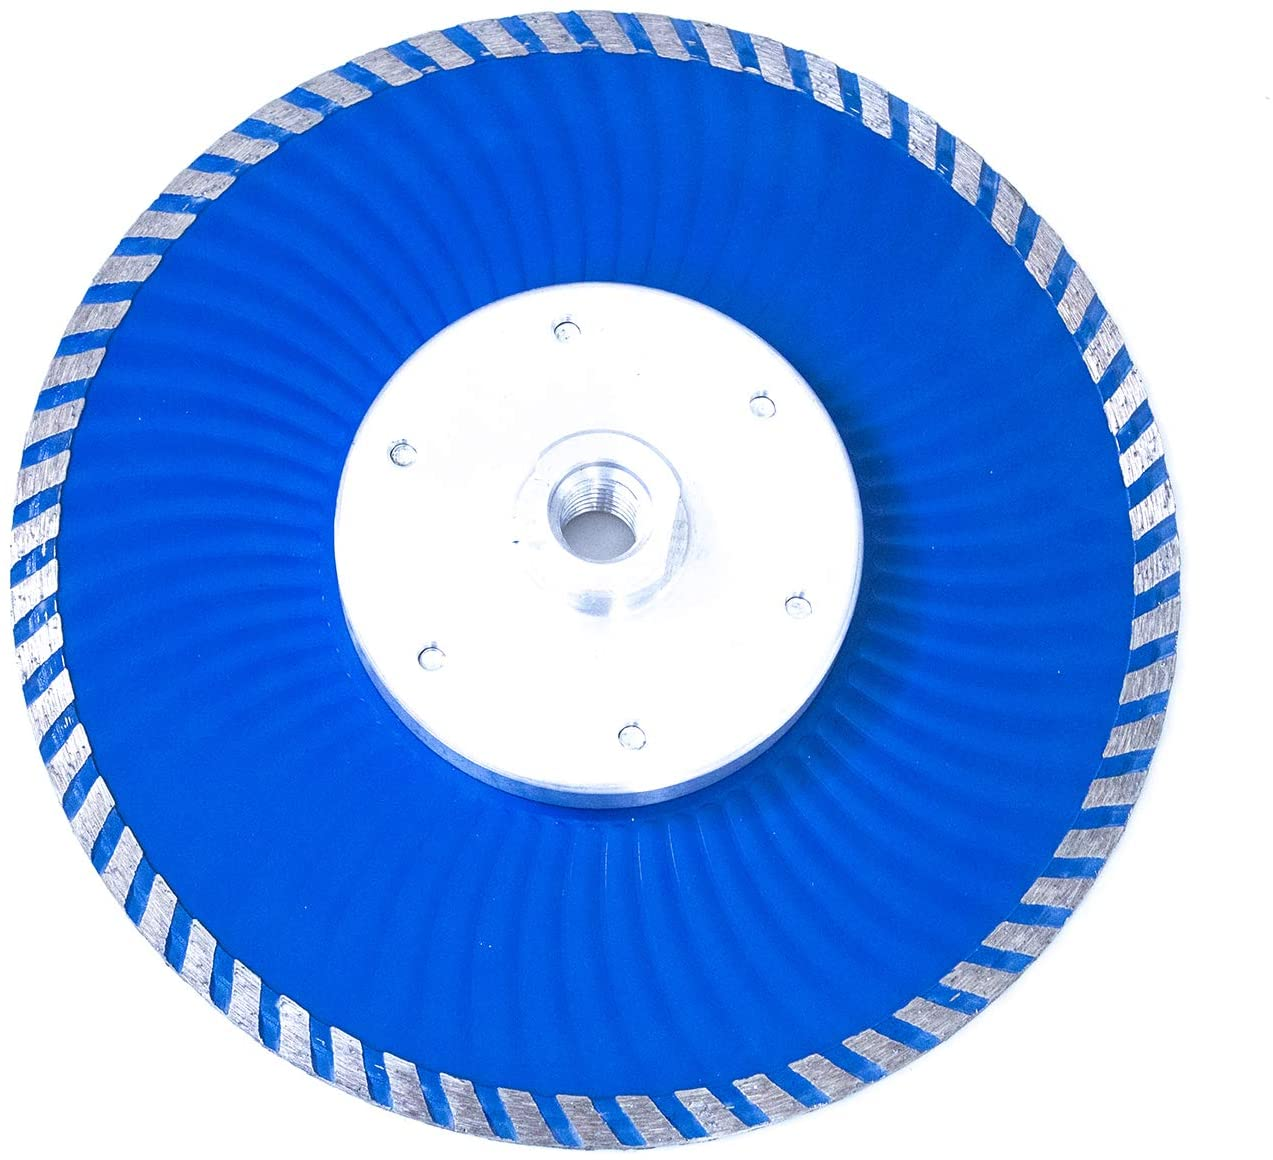 MAX-CRAFT 1 Pcs Diameter 7 Inch Cold-Pressed Continuous Diamond Saw Blades Turbo Wave with Flange Diamond Cutting Disc. For Stone Concrete Brick Tile Granite Marble Masonry (7 INCH-1 PC)